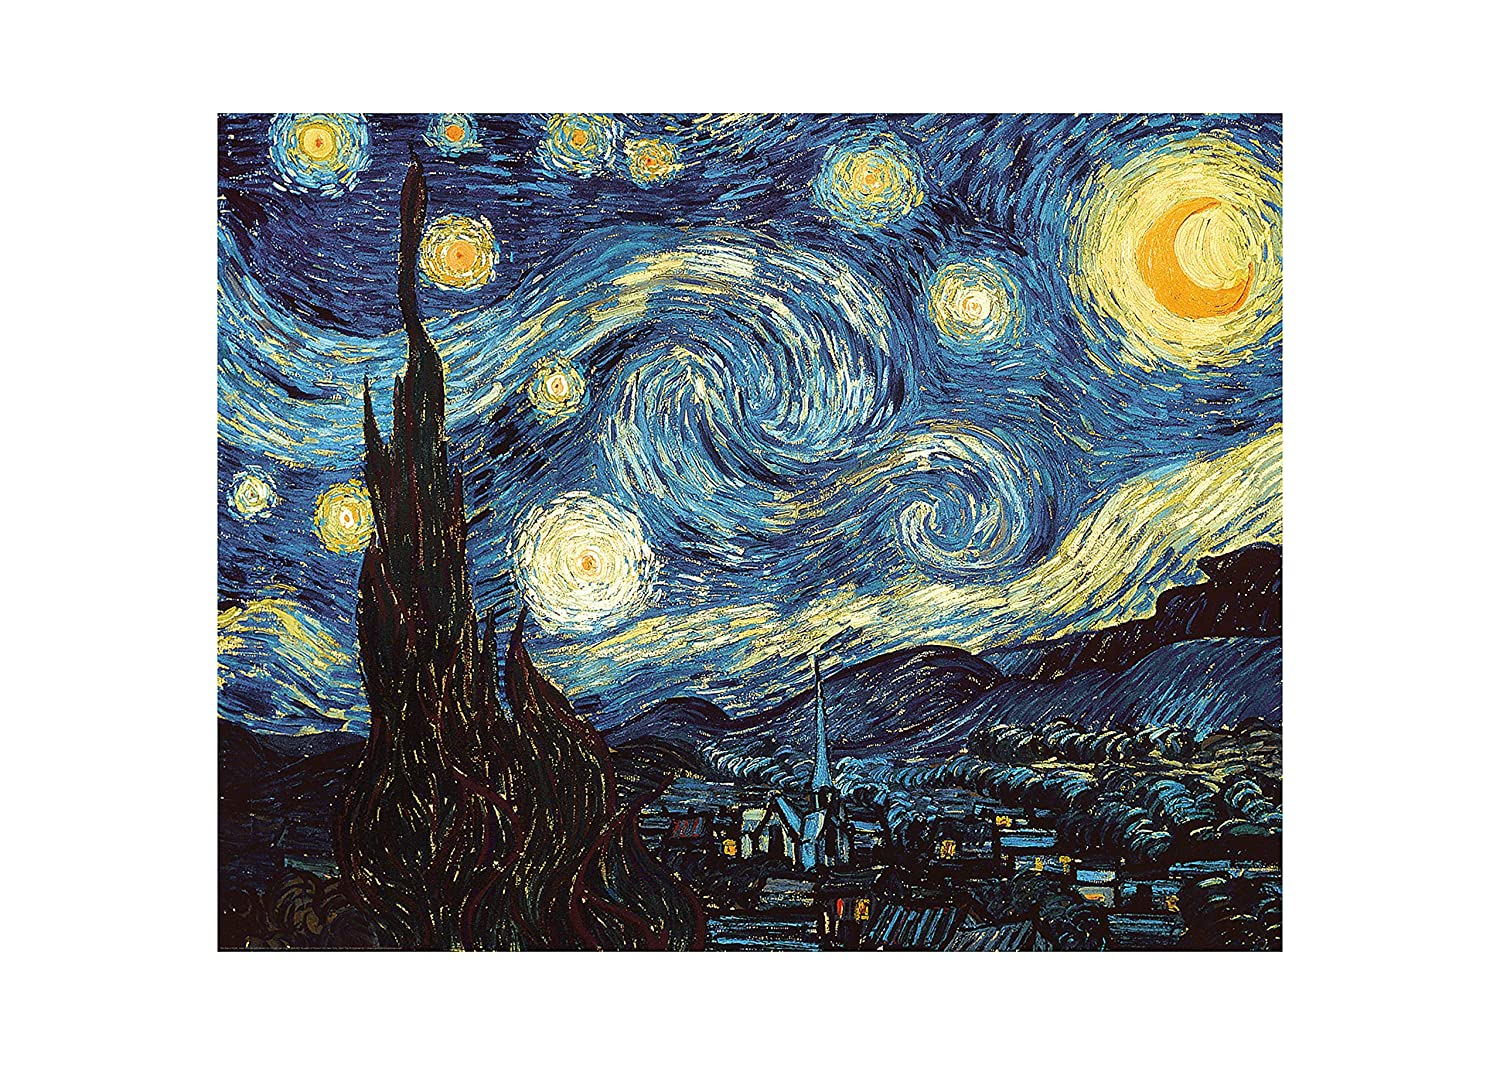 DIY Paint by Numbers Kit for Adults - Van Gogh The Starry Night Replica | DIY Paint by Numbers Landscape Scene Paintings Arts Craft for Home Wall Decor | Canvas, Brushes, Acrylic Paints Included Alto Crafto